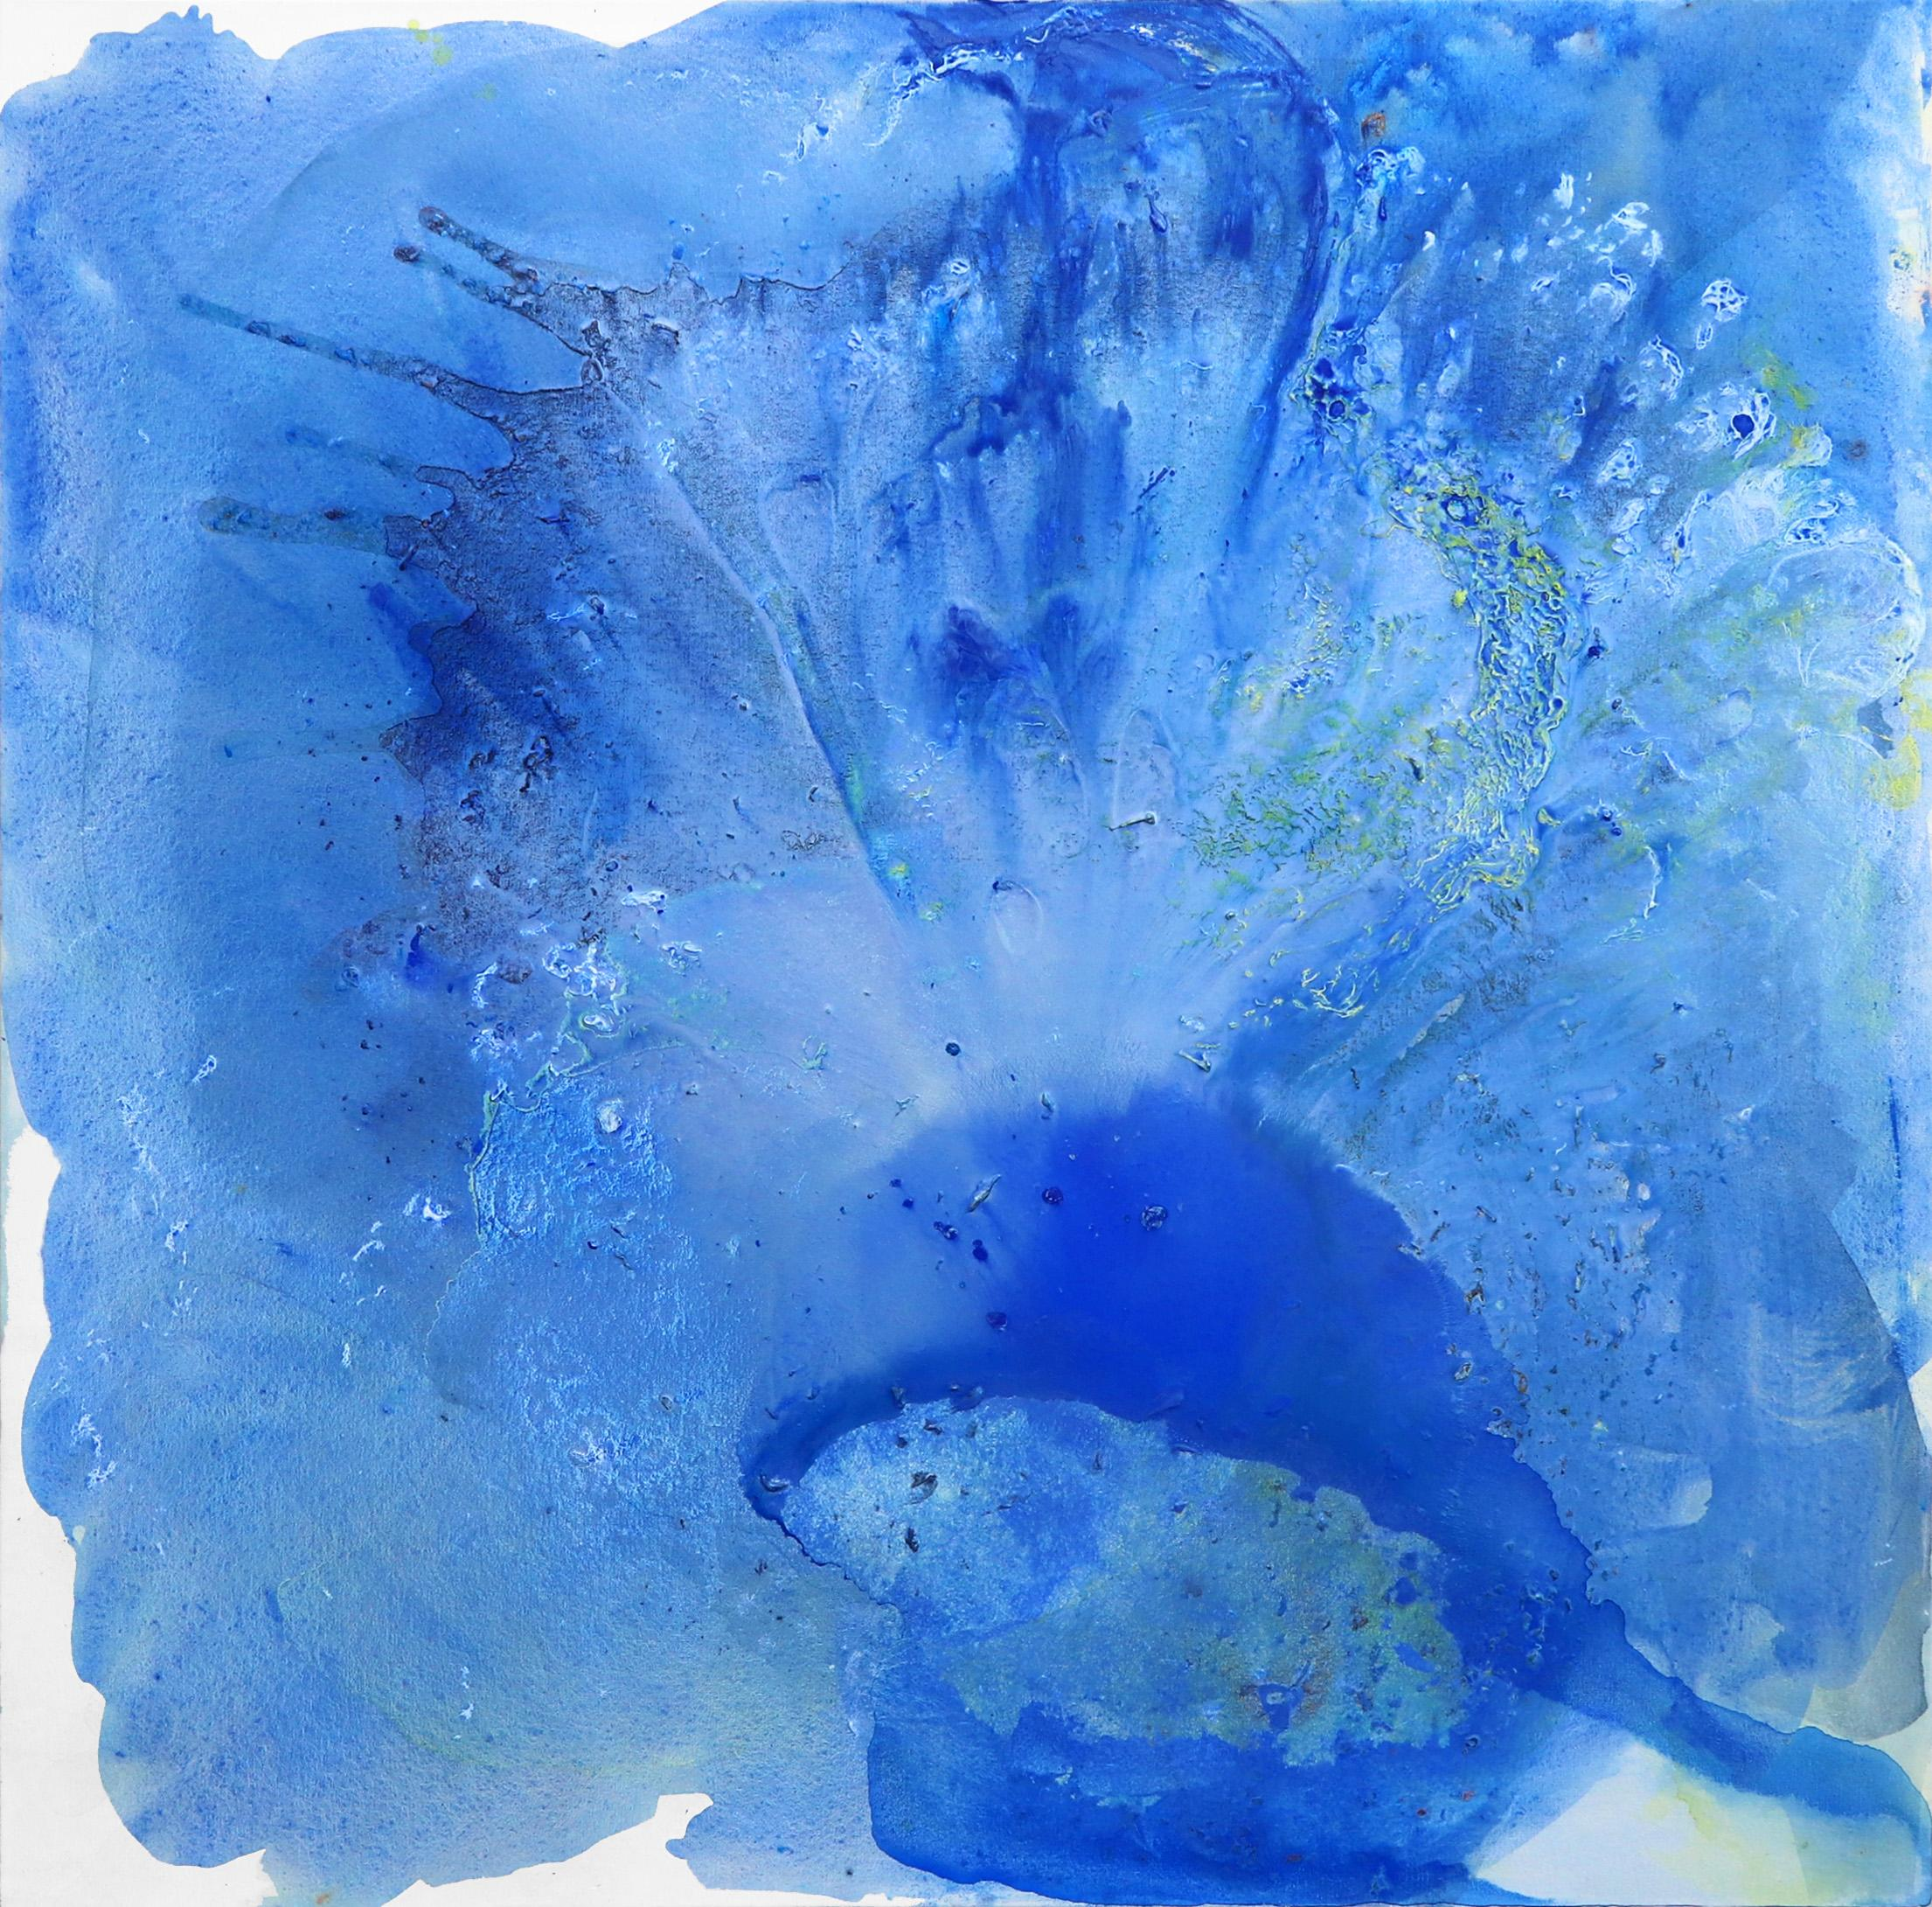 Inside the Space - Calm Blue Abstract Waterscape and Sky Painting